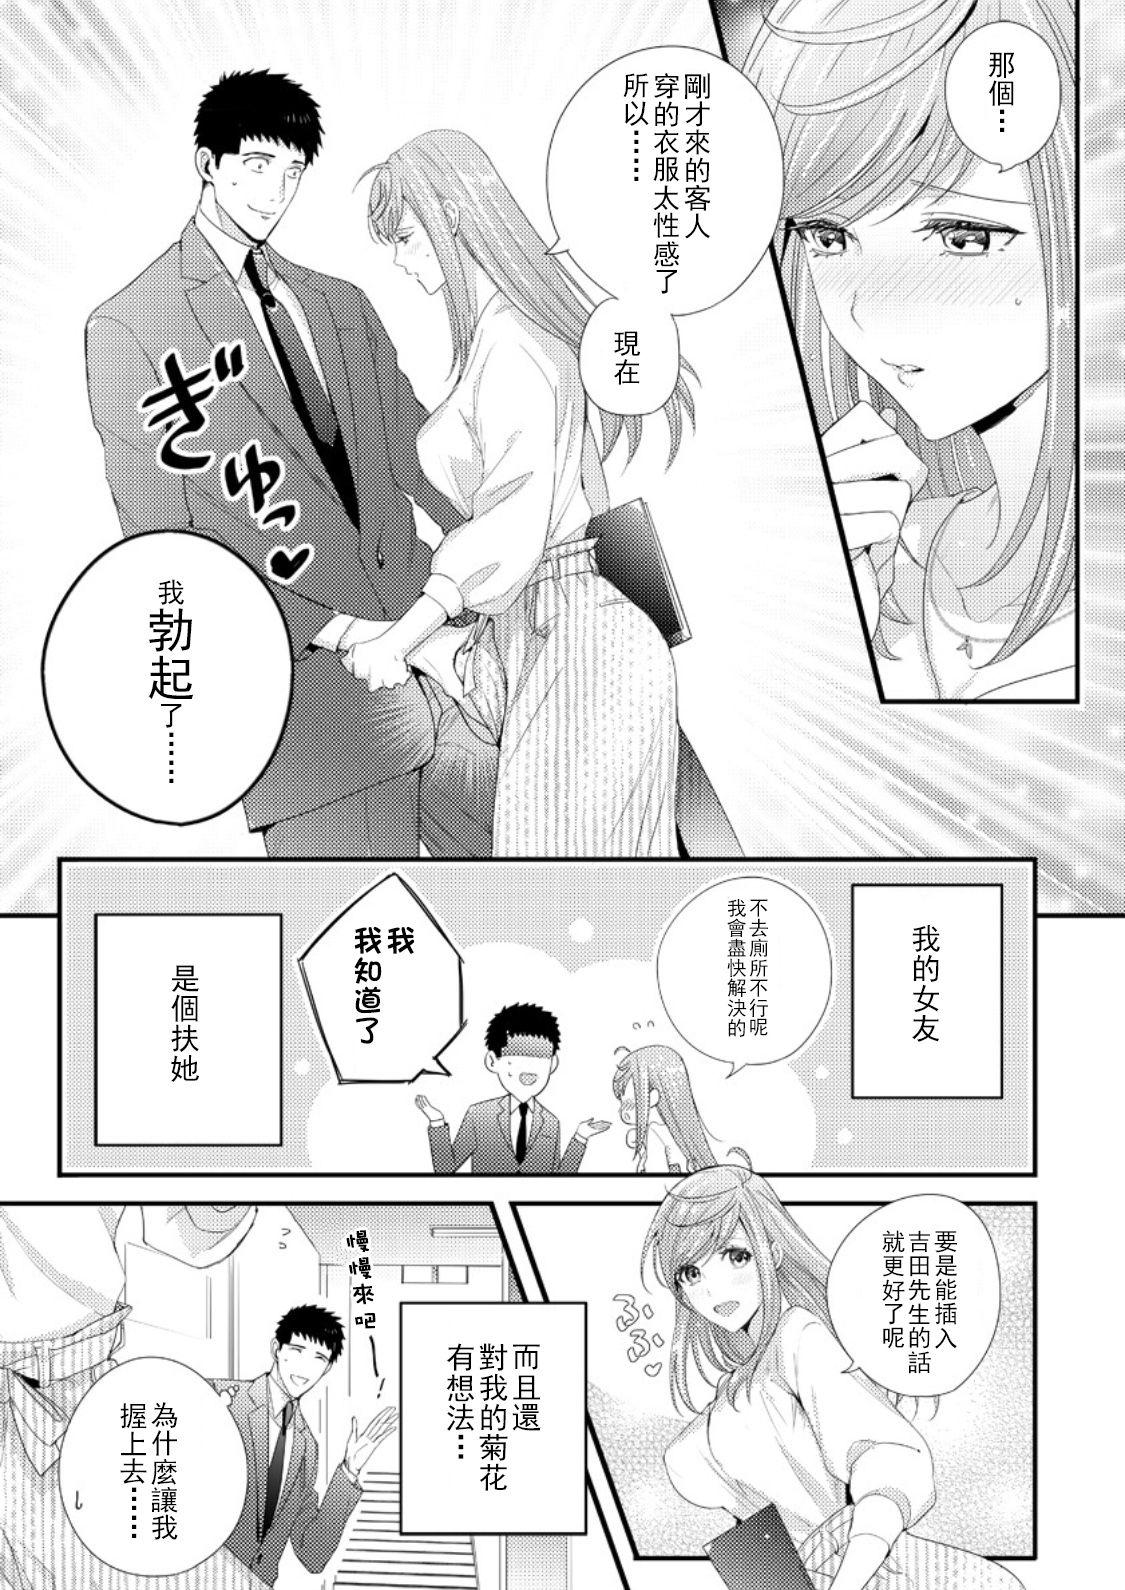 Please Let Me Hold You Futaba-San! Ch.1 2